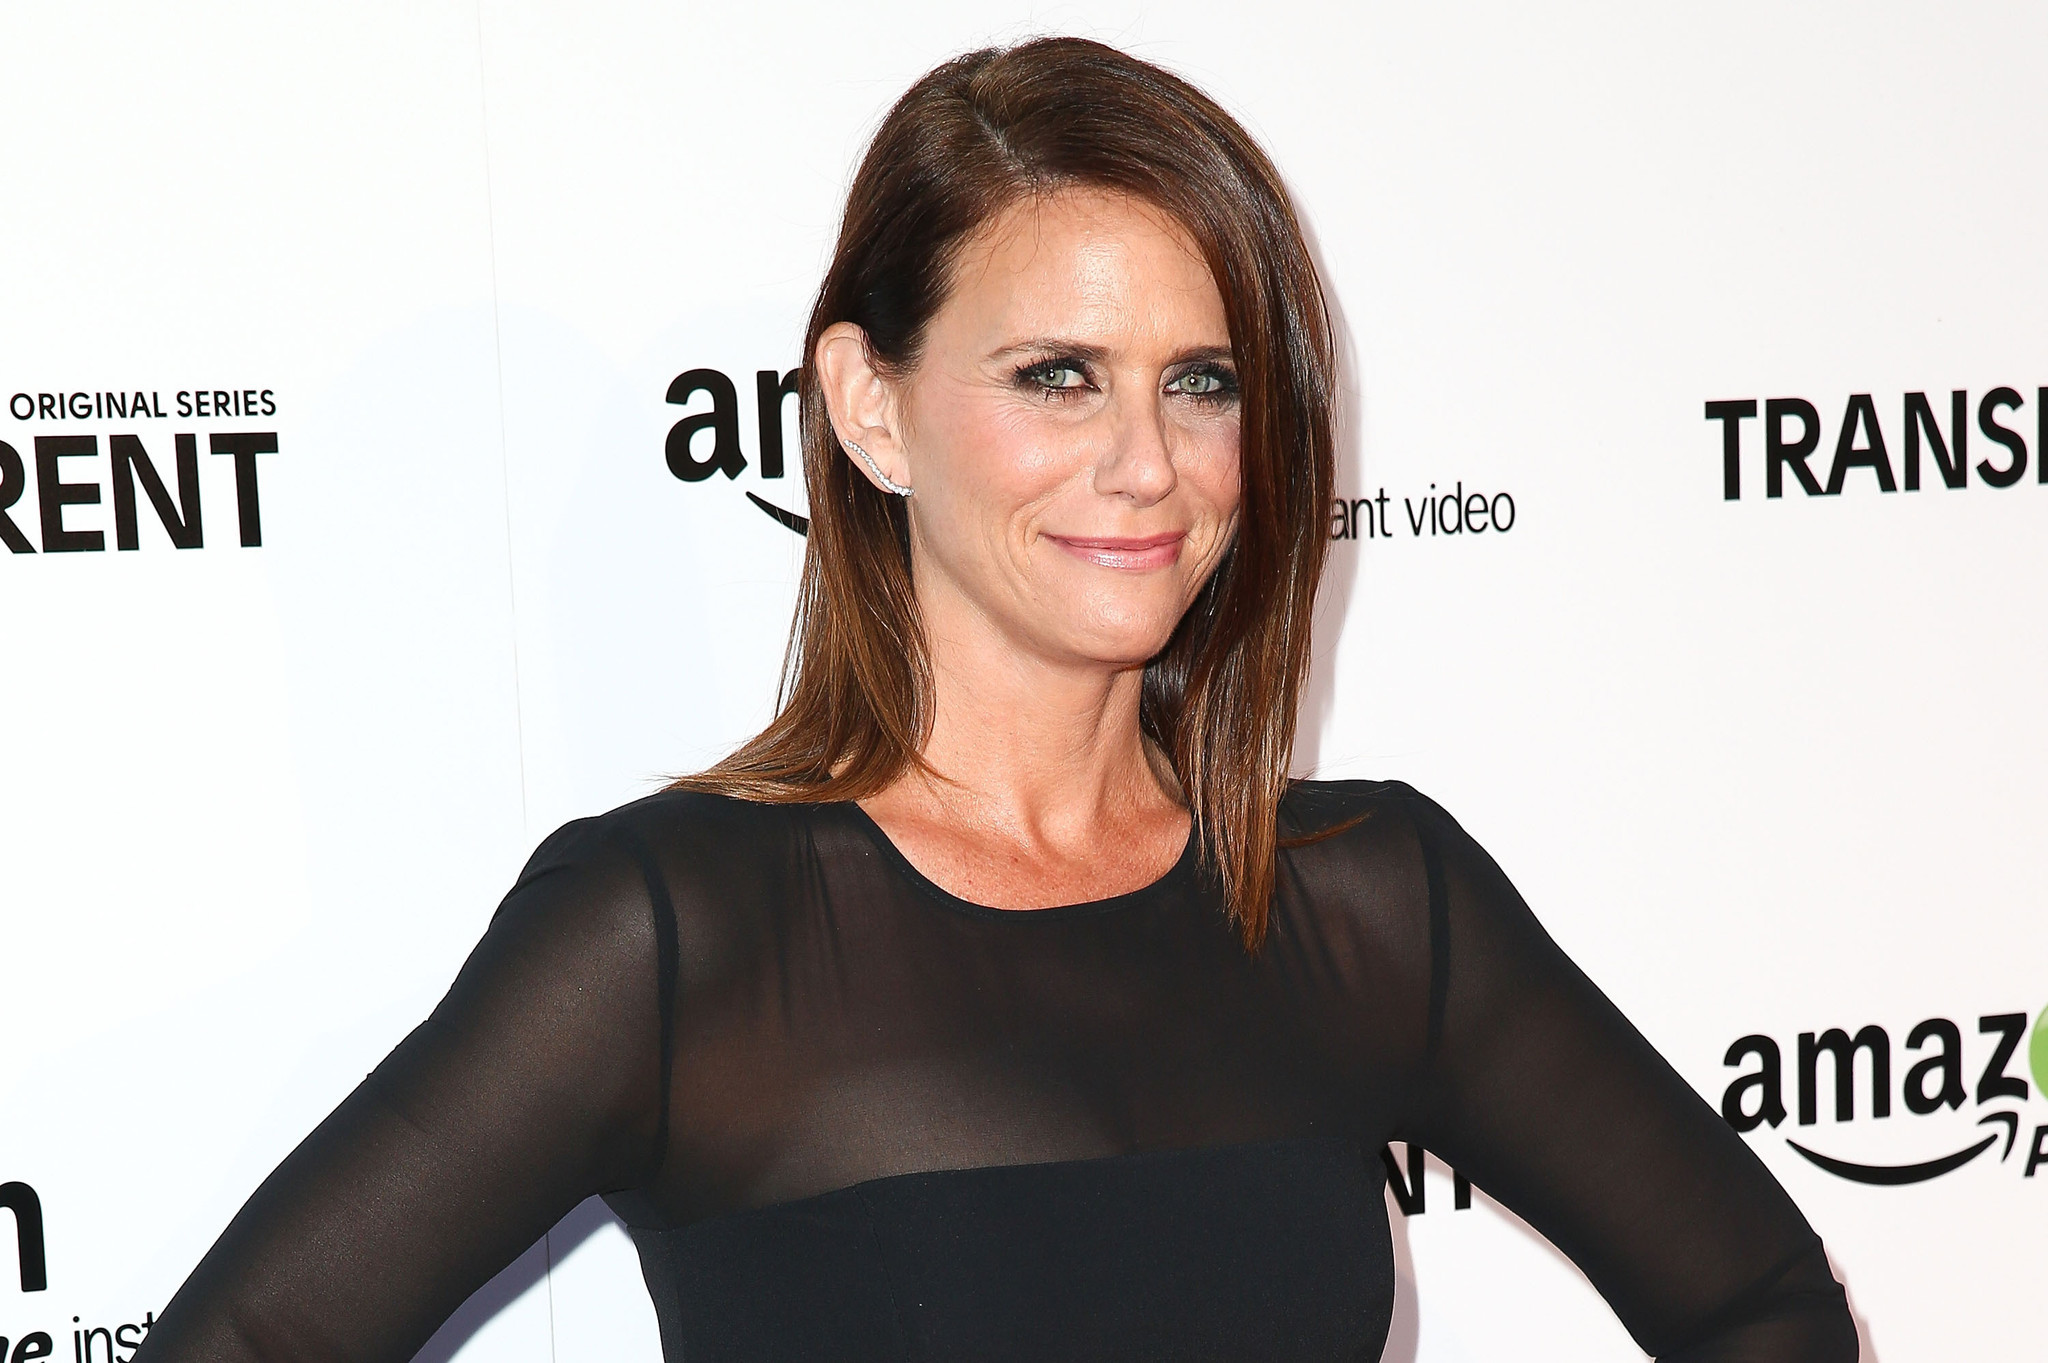 amy landecker doctor strangeamy landecker doctor strange, amy landecker in transparent, amy landecker, amy landecker imdb, amy landecker louie, amy landecker young, amy landecker larry david, amy landecker bradley whitford, amy landecker measurements, amy landecker husband, amy landecker jewish, amy landecker don cheadle, amy landecker pictures